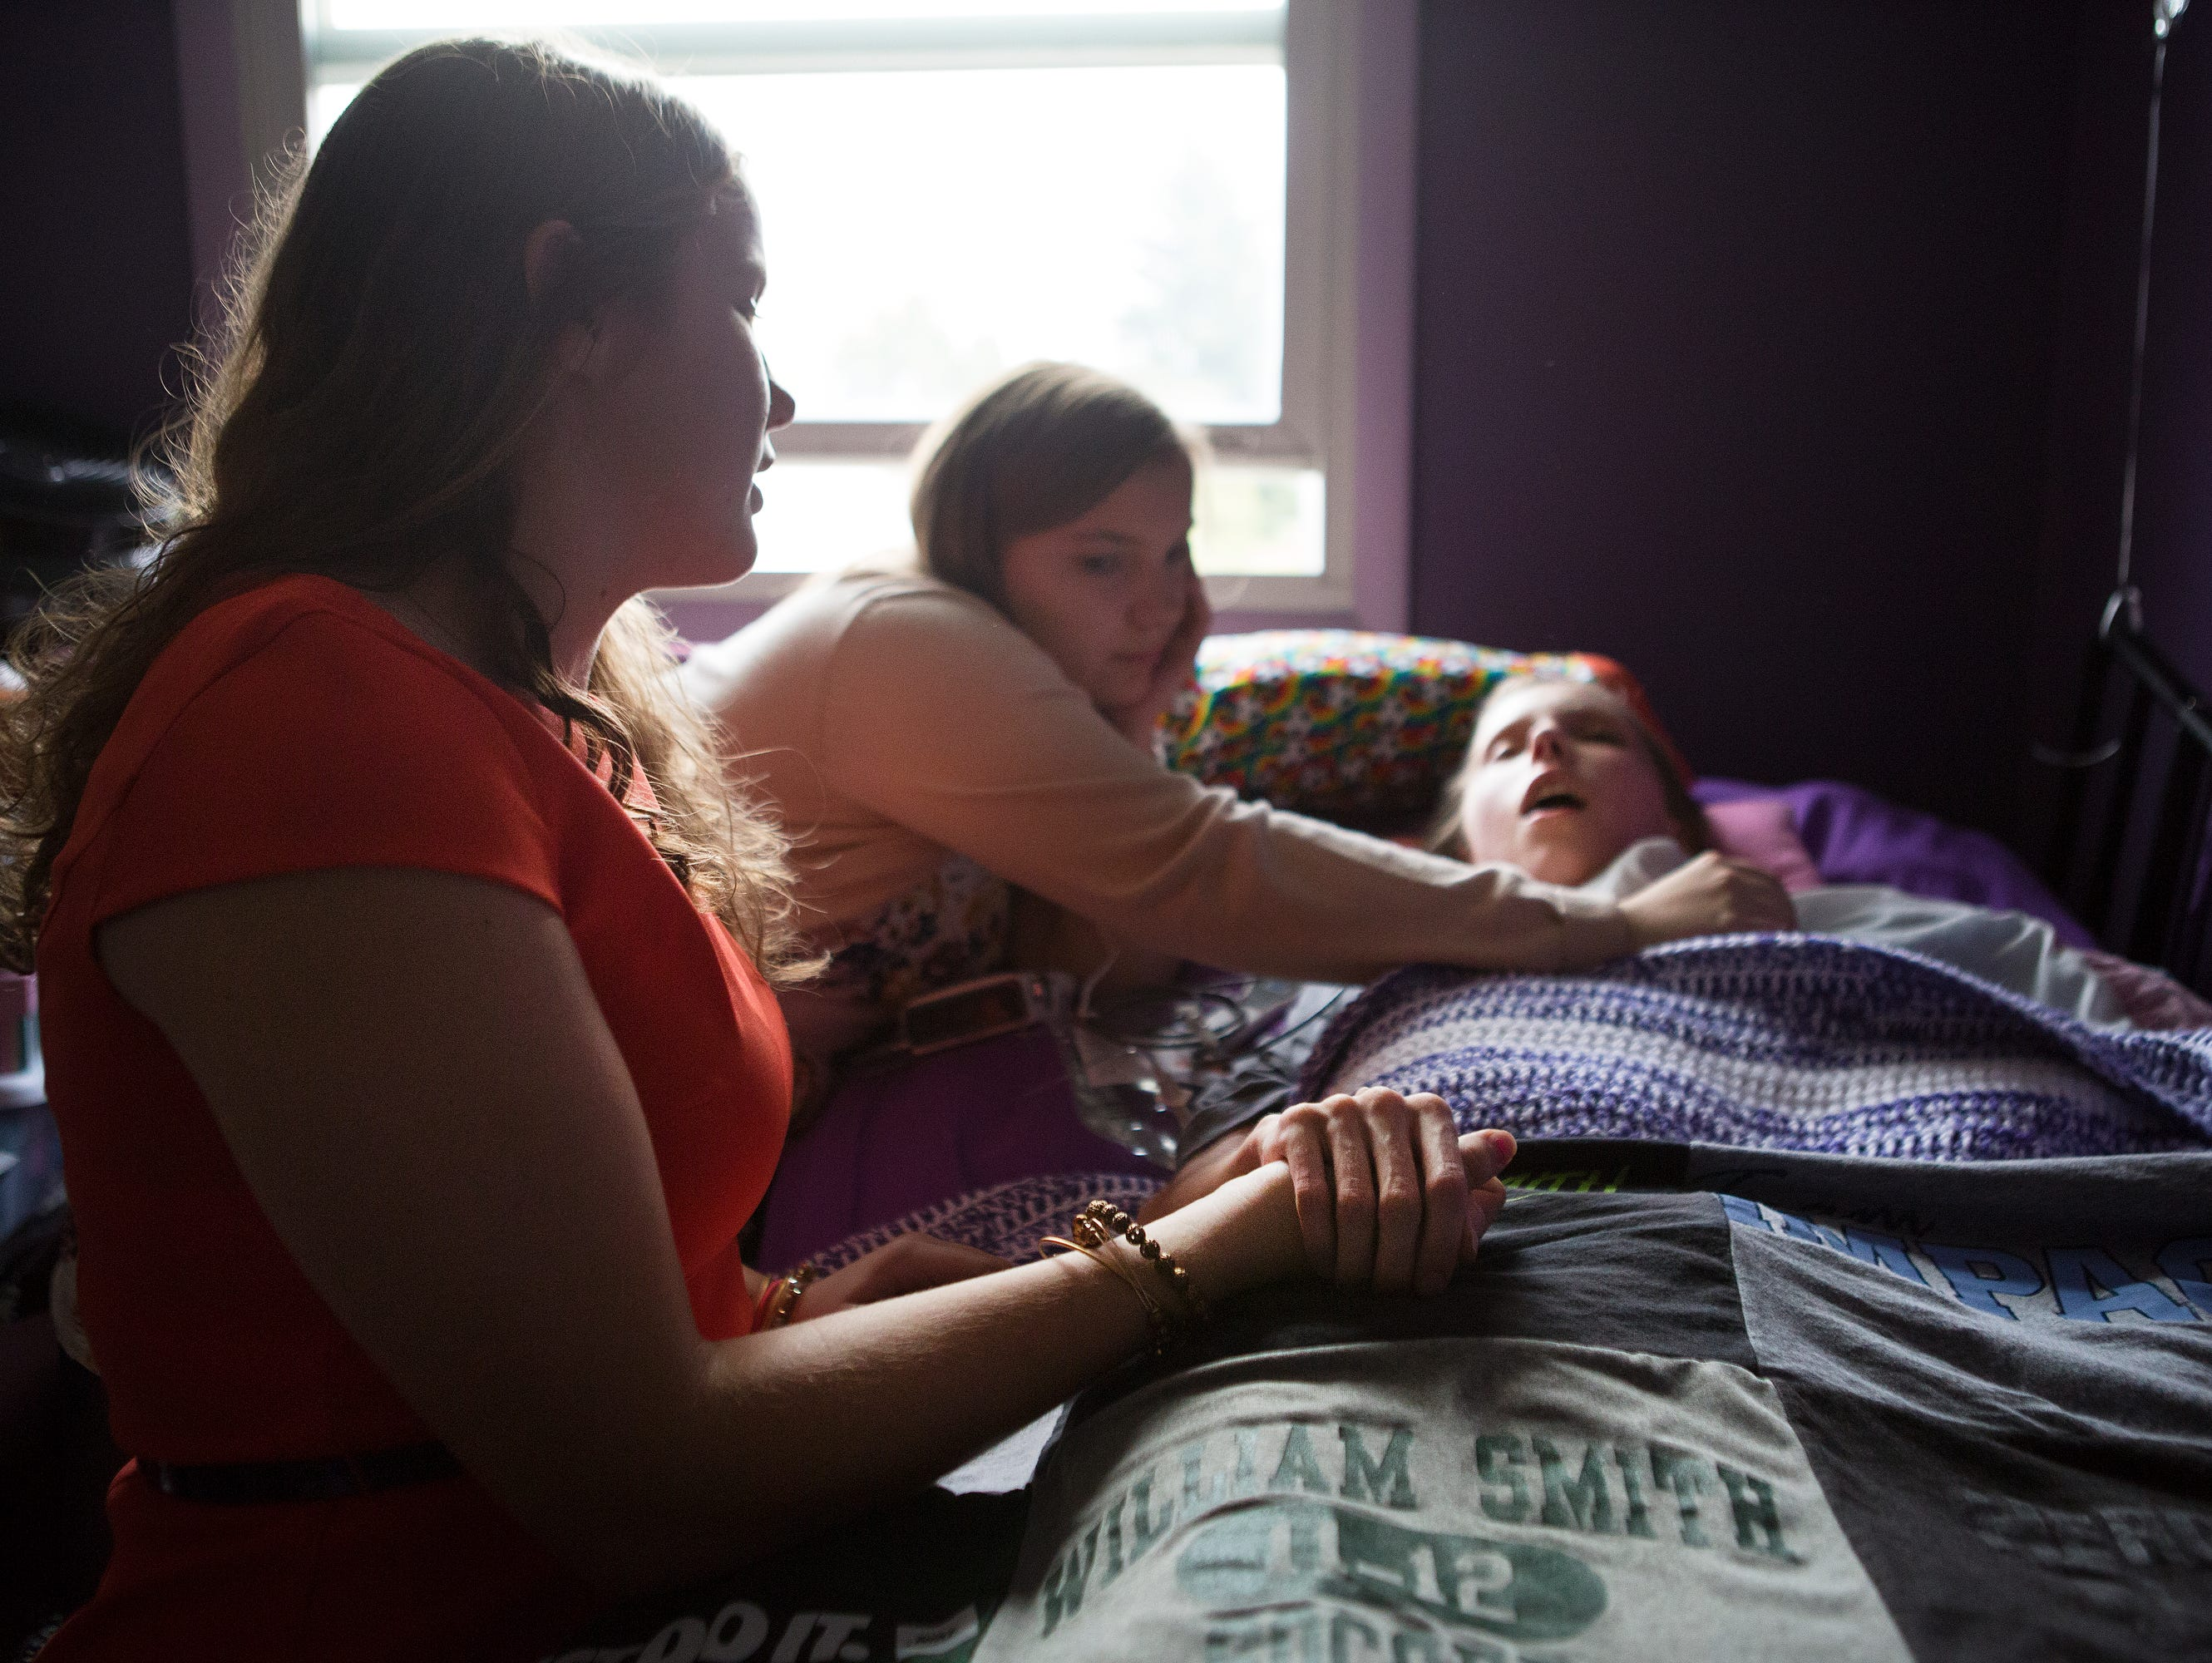 Courtney Wagner is comforted by her 17-year-old twin sisters, Allie and Alex, in their home in Farmington on Wednesday, October 21, 2015. Their mom says the twins have been doing their homework in her room every night.